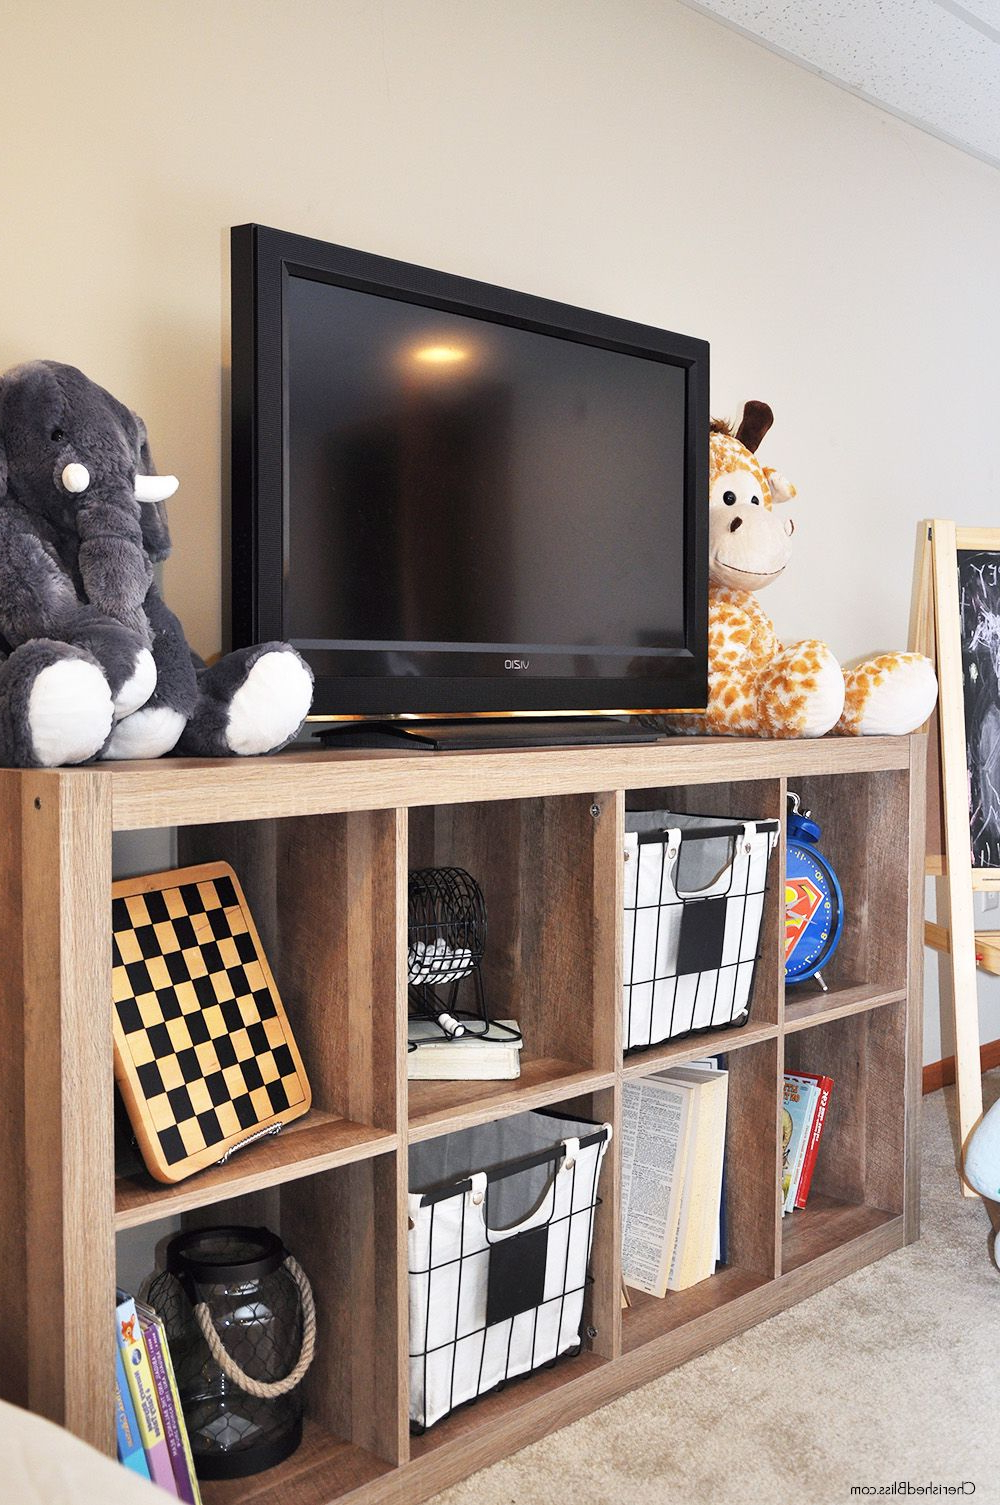 Playroom Progress | Bloggers' Best Diy Ideas | Pinterest | Playroom Throughout Kenzie 72 Inch Open Display Tv Stands (View 16 of 20)